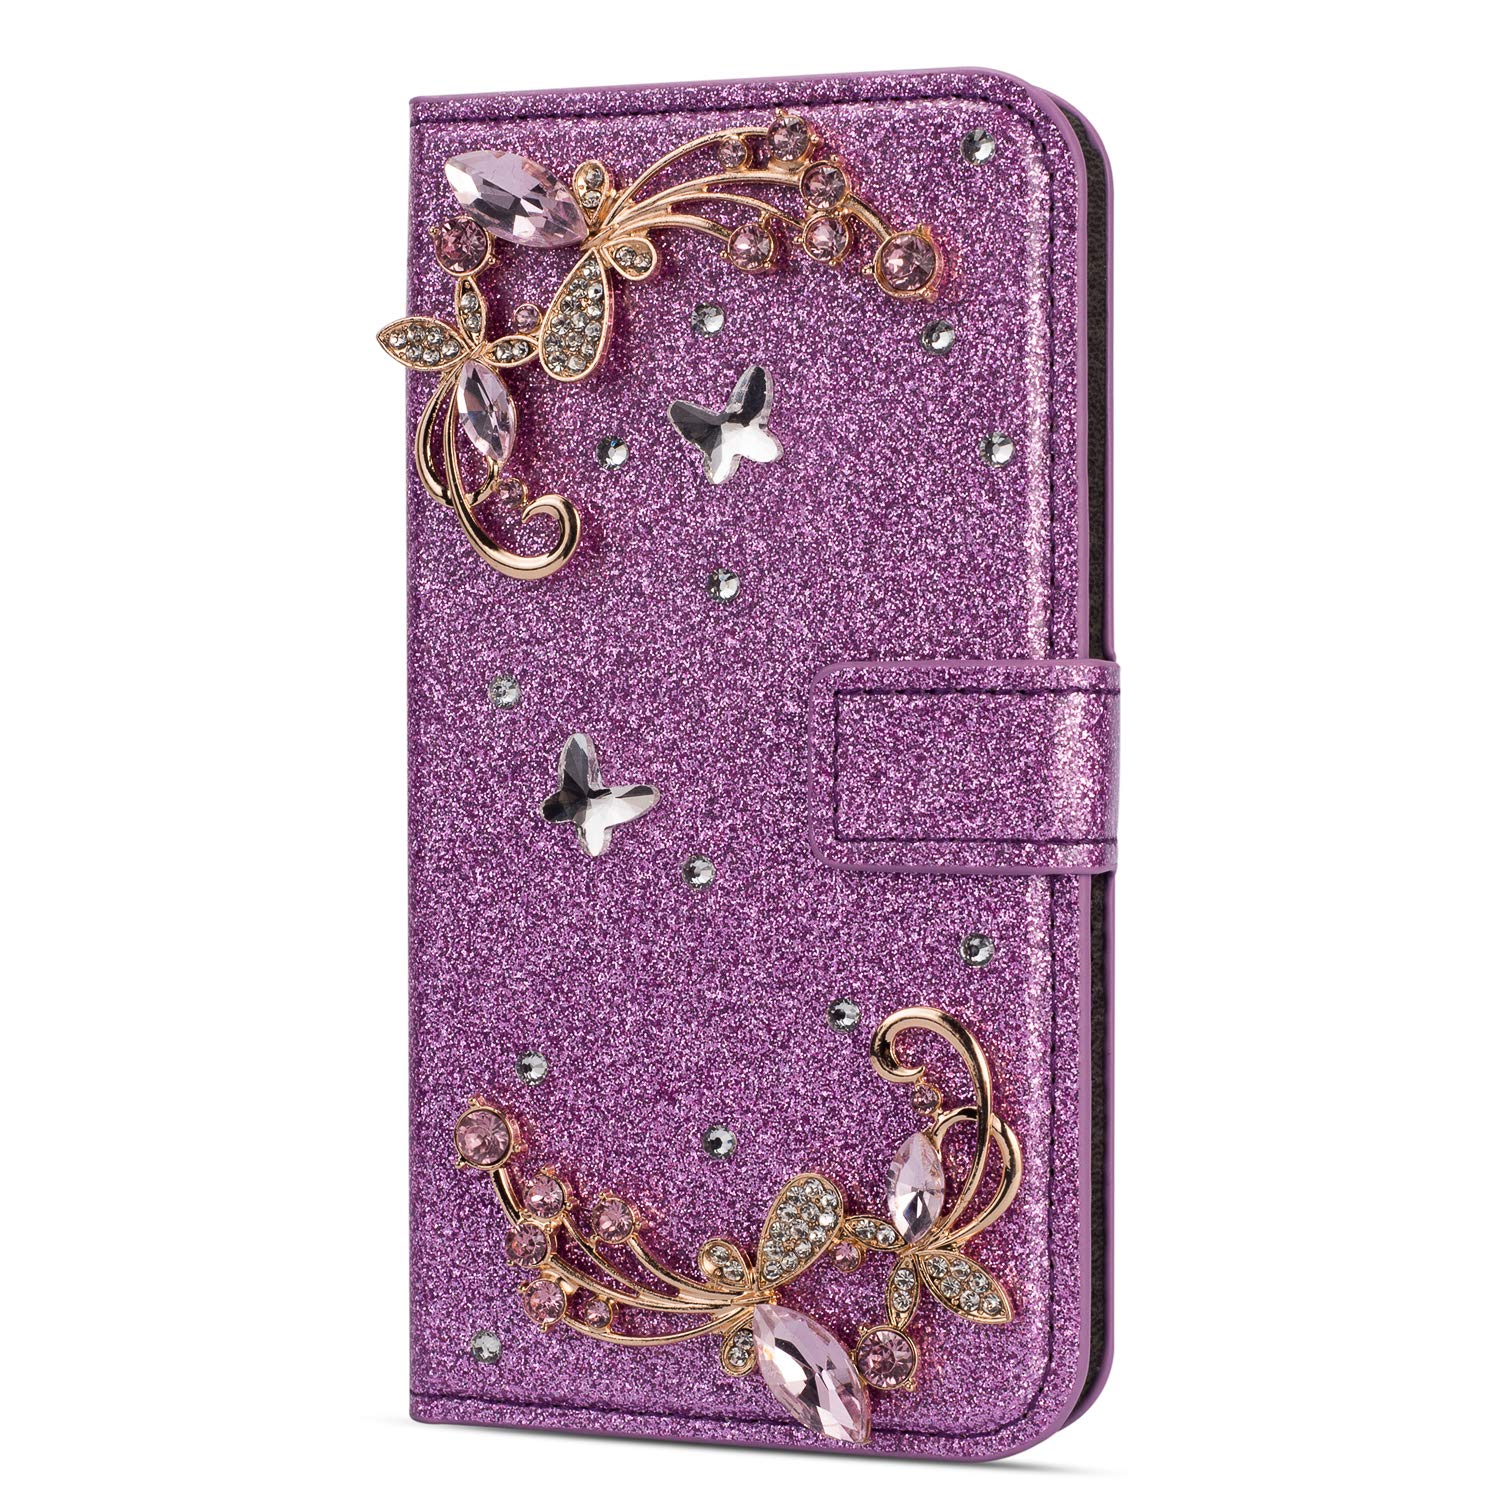 Amocase Glitter Case with 2 in 1 Stylus for iPhone SE,Luxury Diamond 3D Crystal Butterfly Flower Magnetic Wallet Soft PU Leather Stand Shockproof Case for iPhone SE/5/5S - Purple